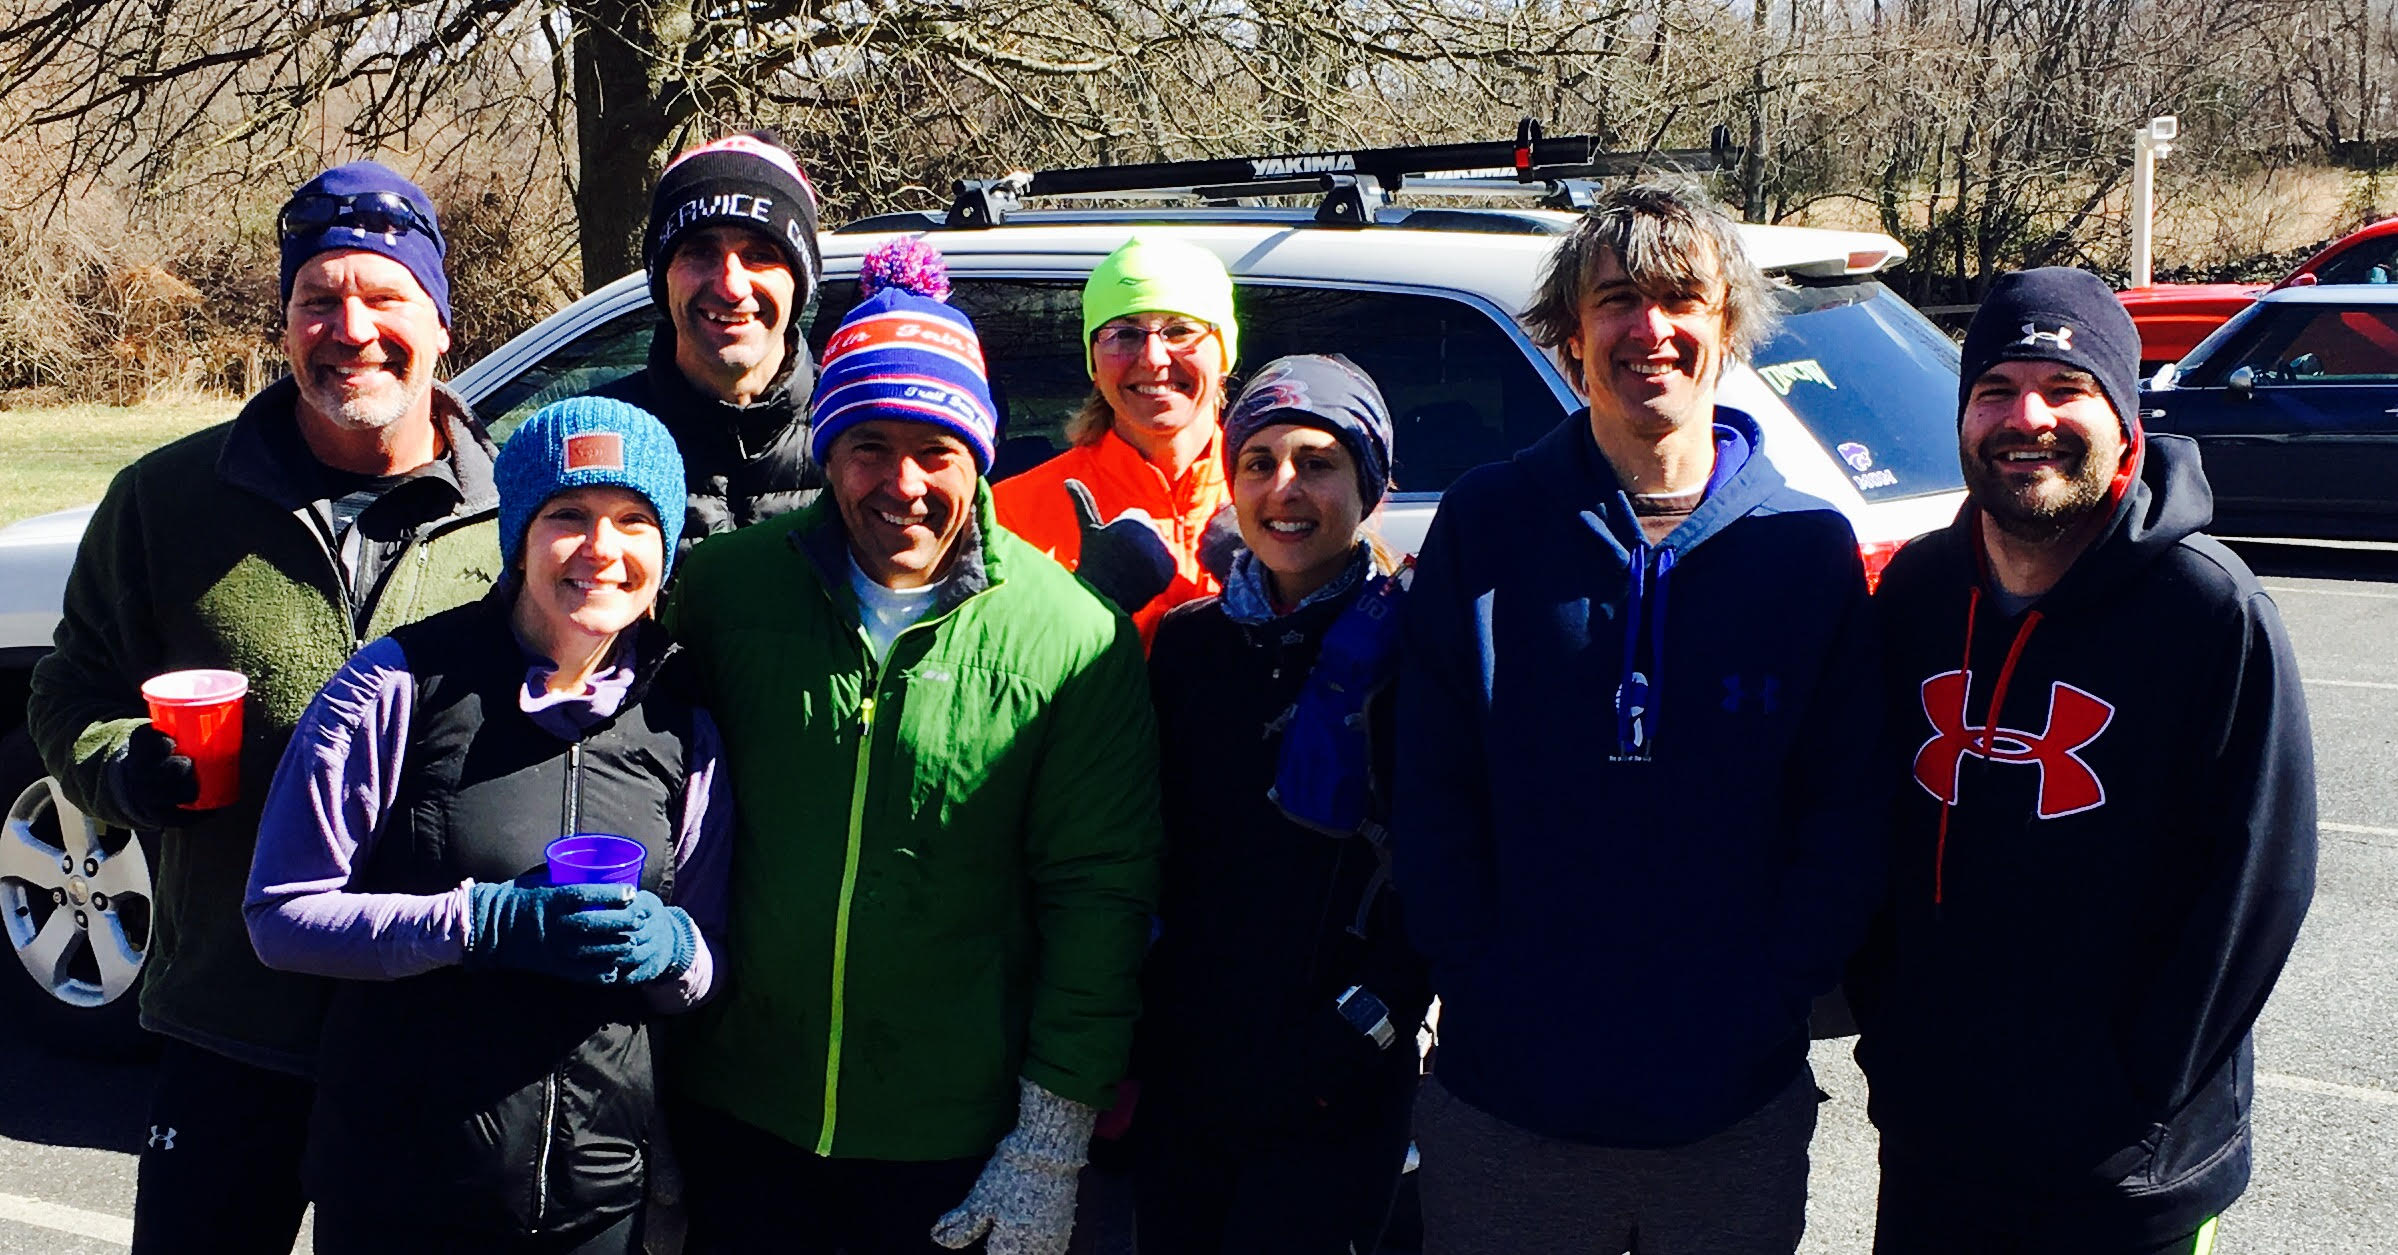 Charm City Run BelAir trail running group. Yes, I am as cold as I look (3rd from the right), and Mr Live Full (aka my husband John, 2nd from the left) is going to hear about it the whole car ride home.